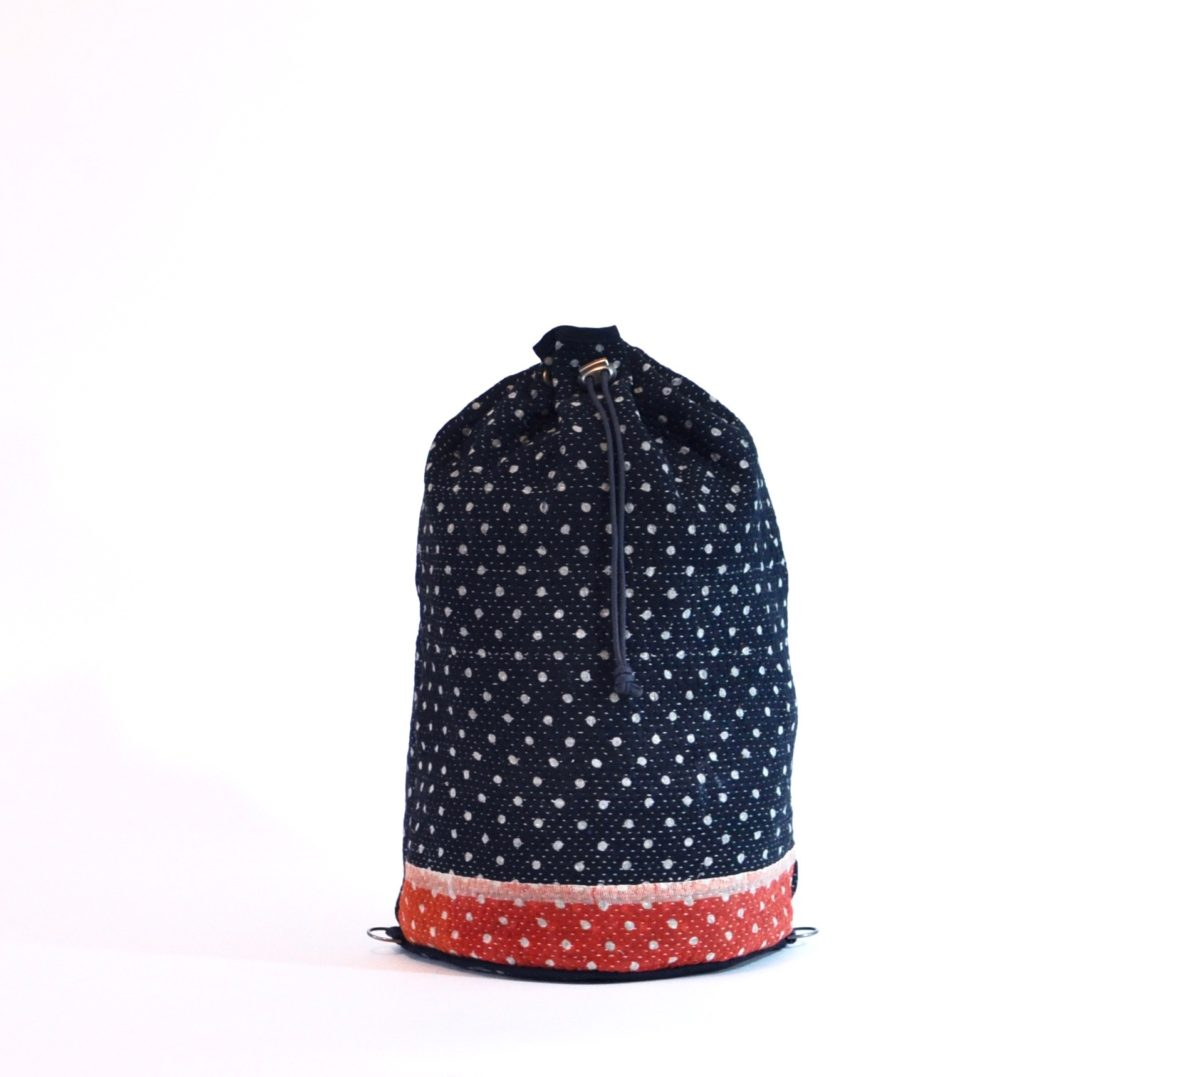 YESNESS Navy w: White Polka Dots & Red Band 4